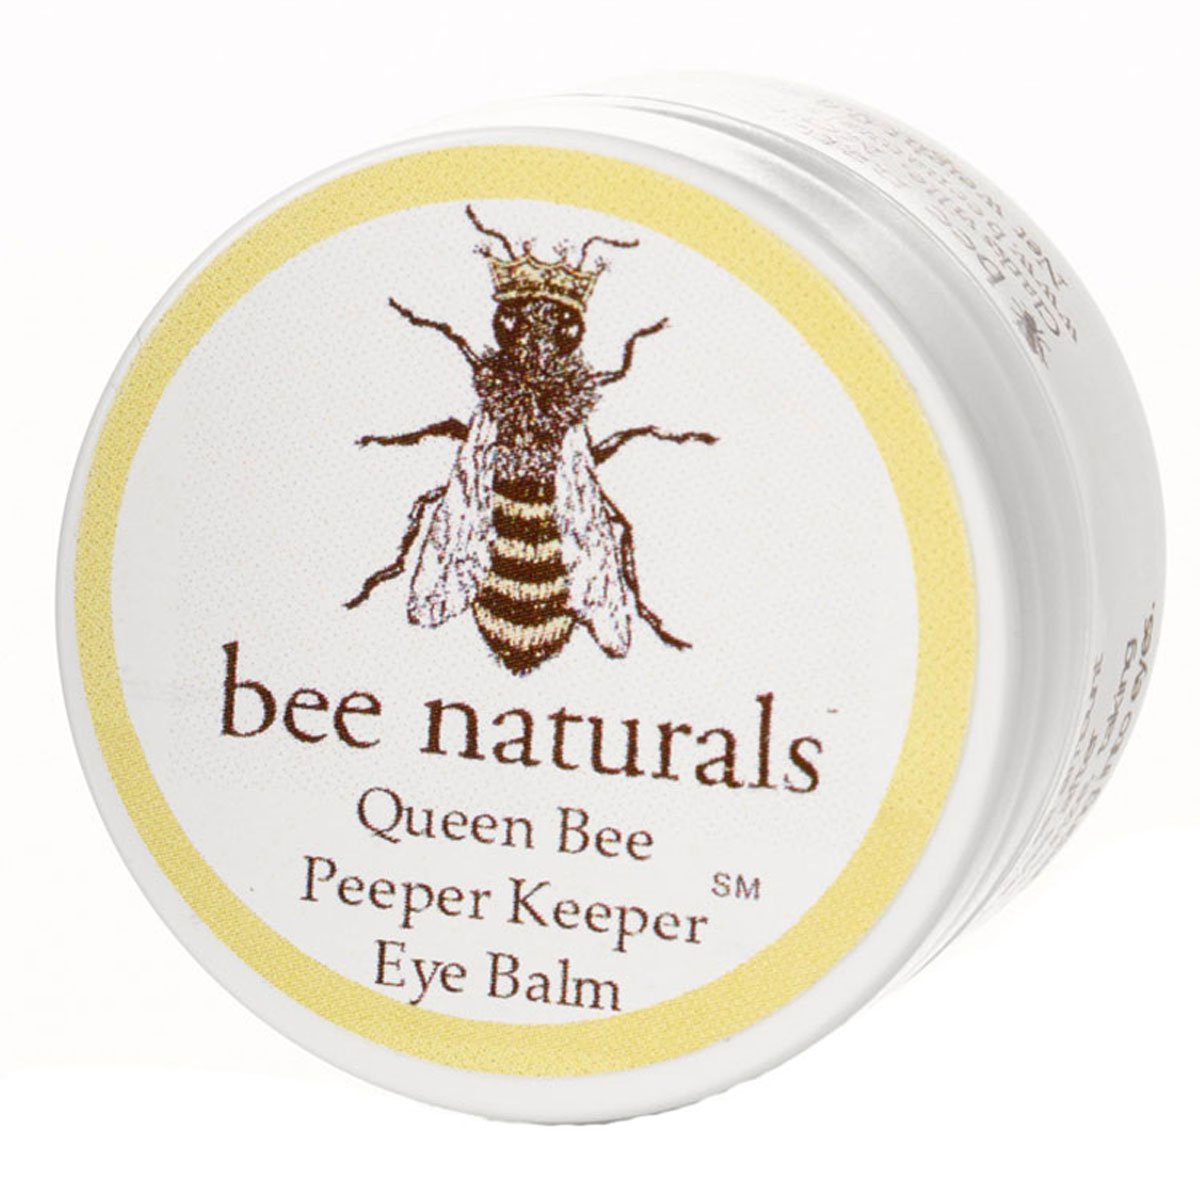 Queen Bee Naturals Best Eye Balm Peeper Keeper - Eyelid Cream Helps Reduce Crows Feet, Wrinkles & Fine Lines - Pure Anti Aging Restorative Moisturizes Your Skin - Vitamin E + 10 Organic Nutrient Oils by Bee Naturals